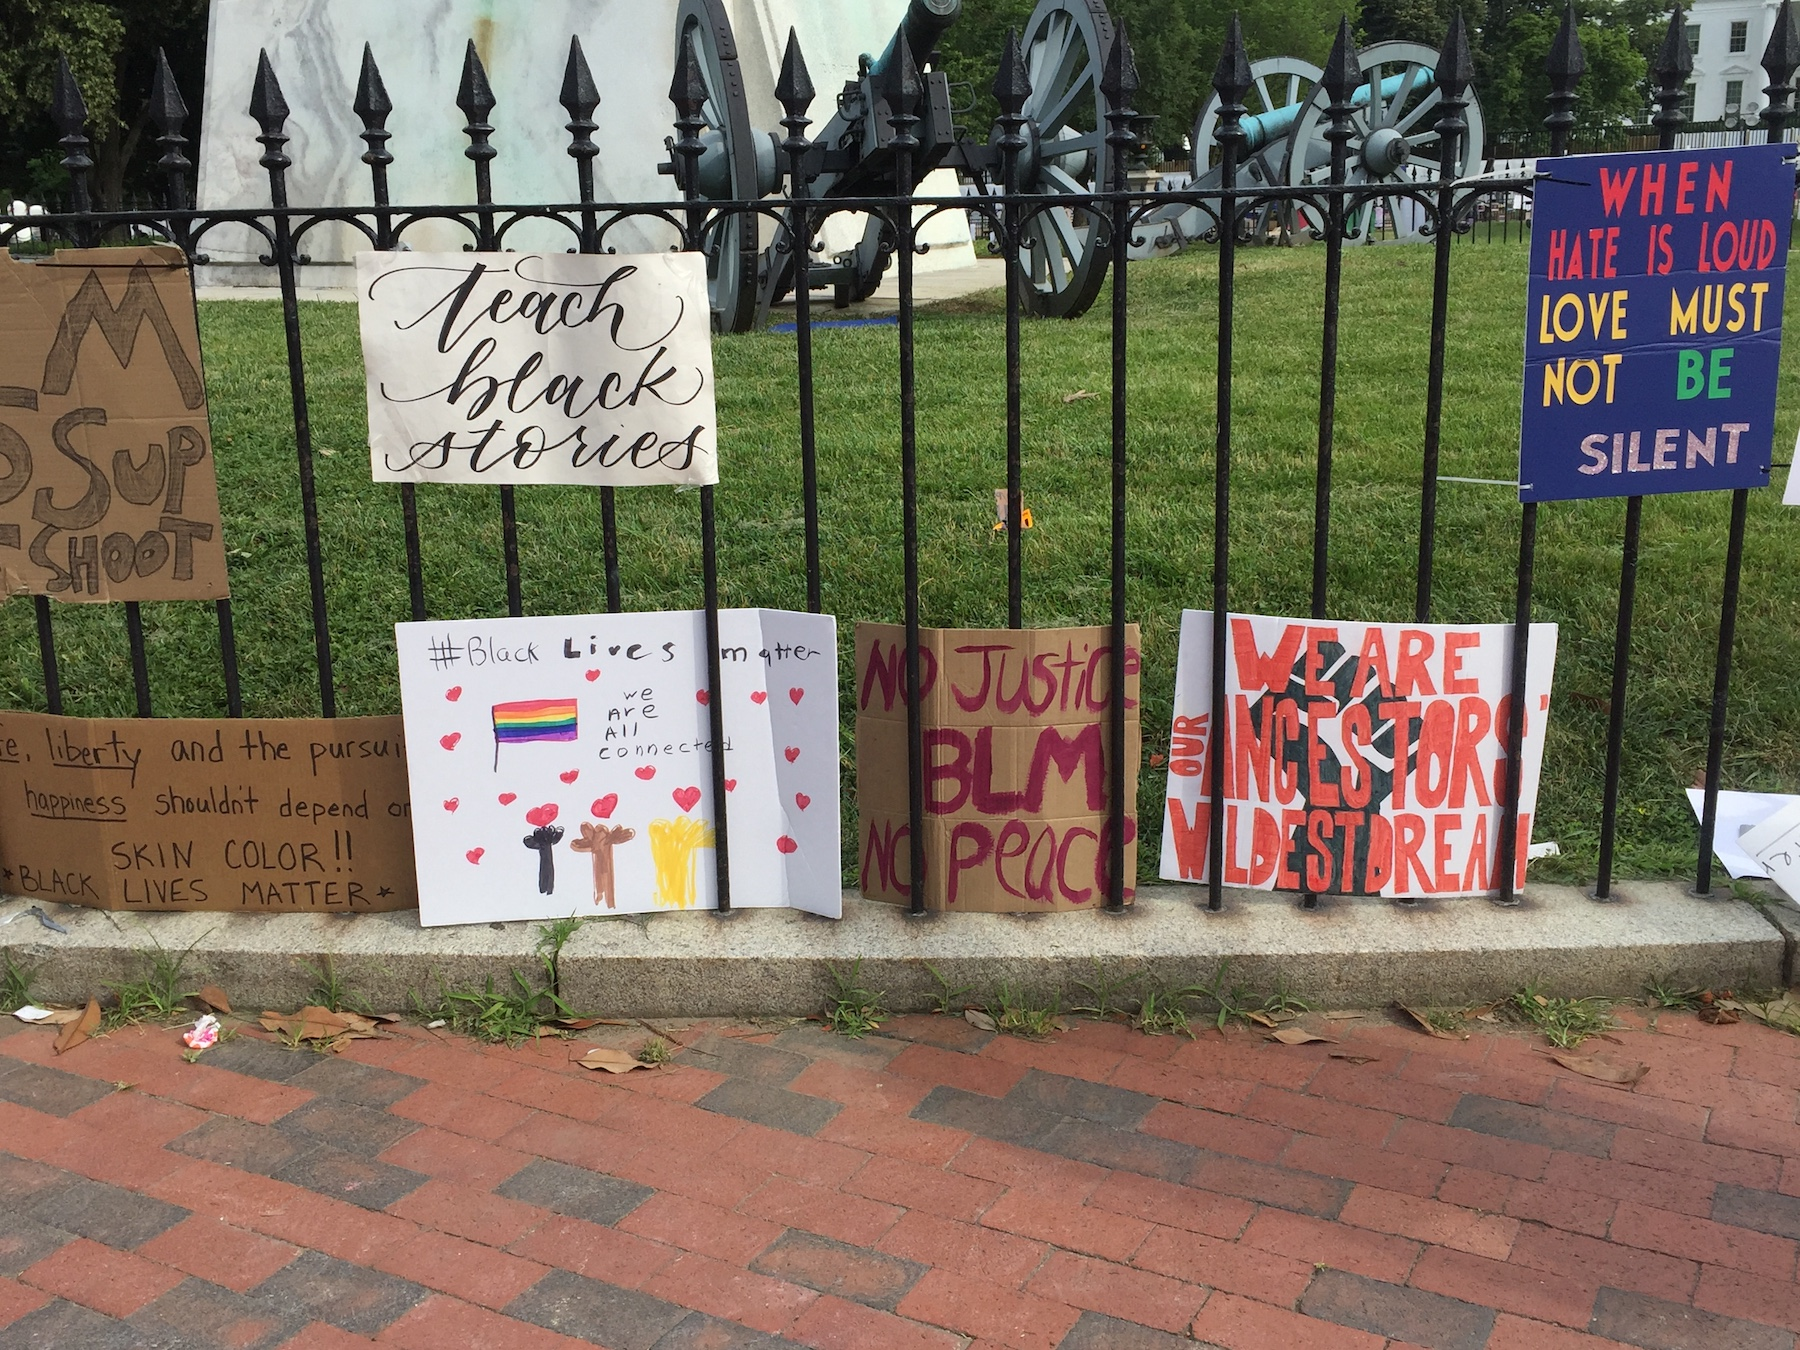 Hand-drawn protest signs hang on black bars of a fence in front of a green lawn.